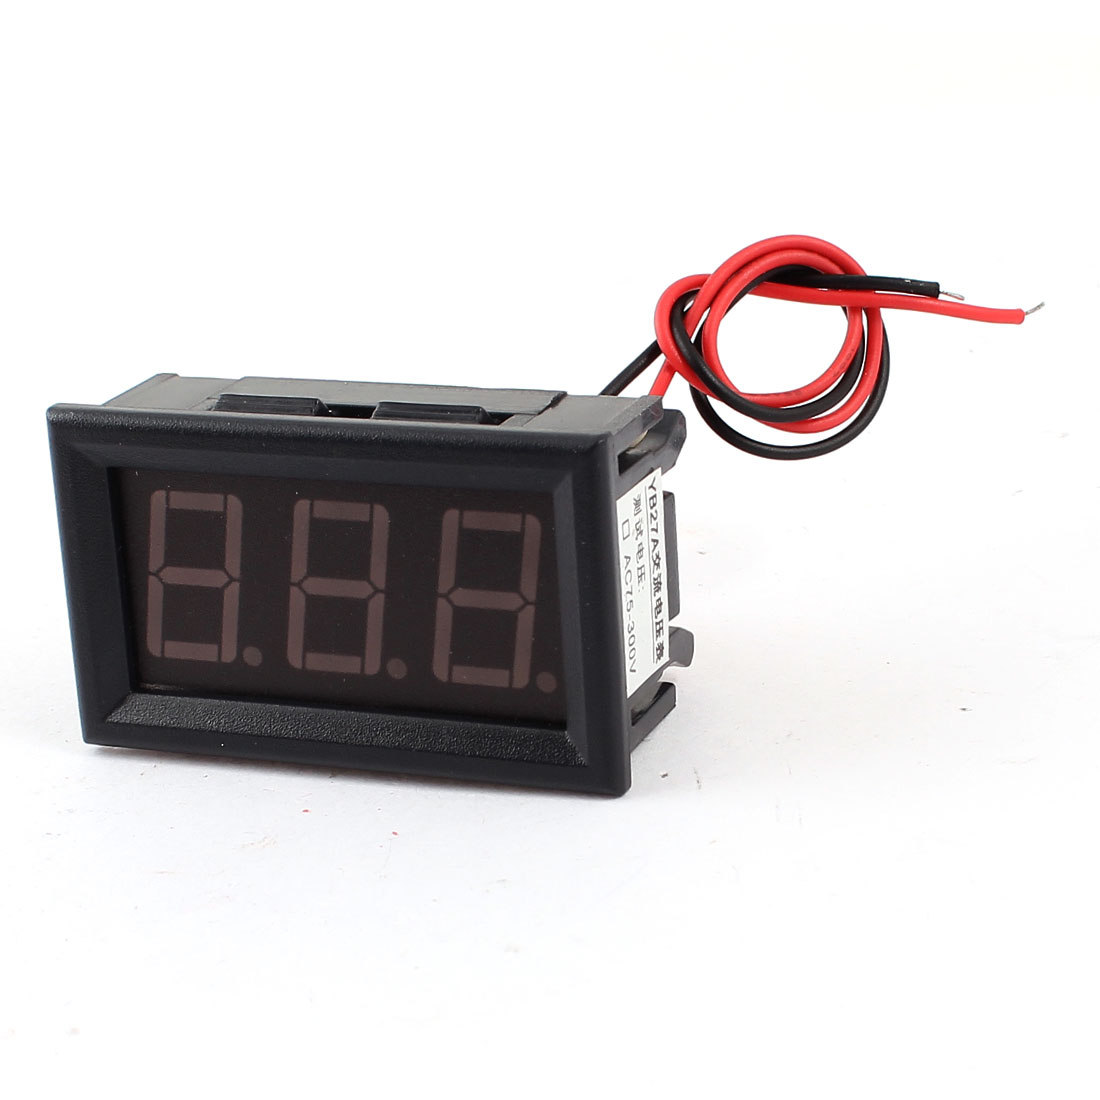 Blue LED Display Digital Voltage Measurement Voltmeter AC 75-500V